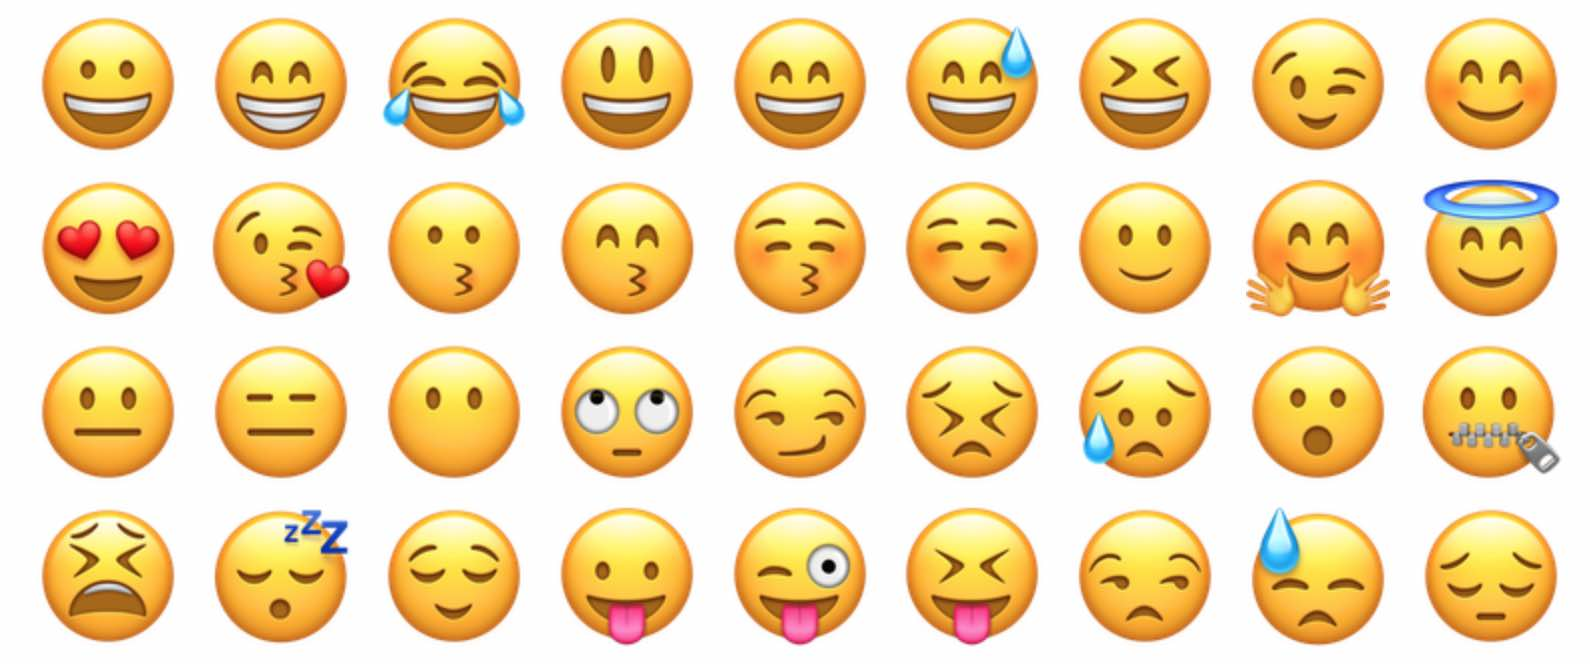 main image for blog post 'Three Lessons on Emojis'